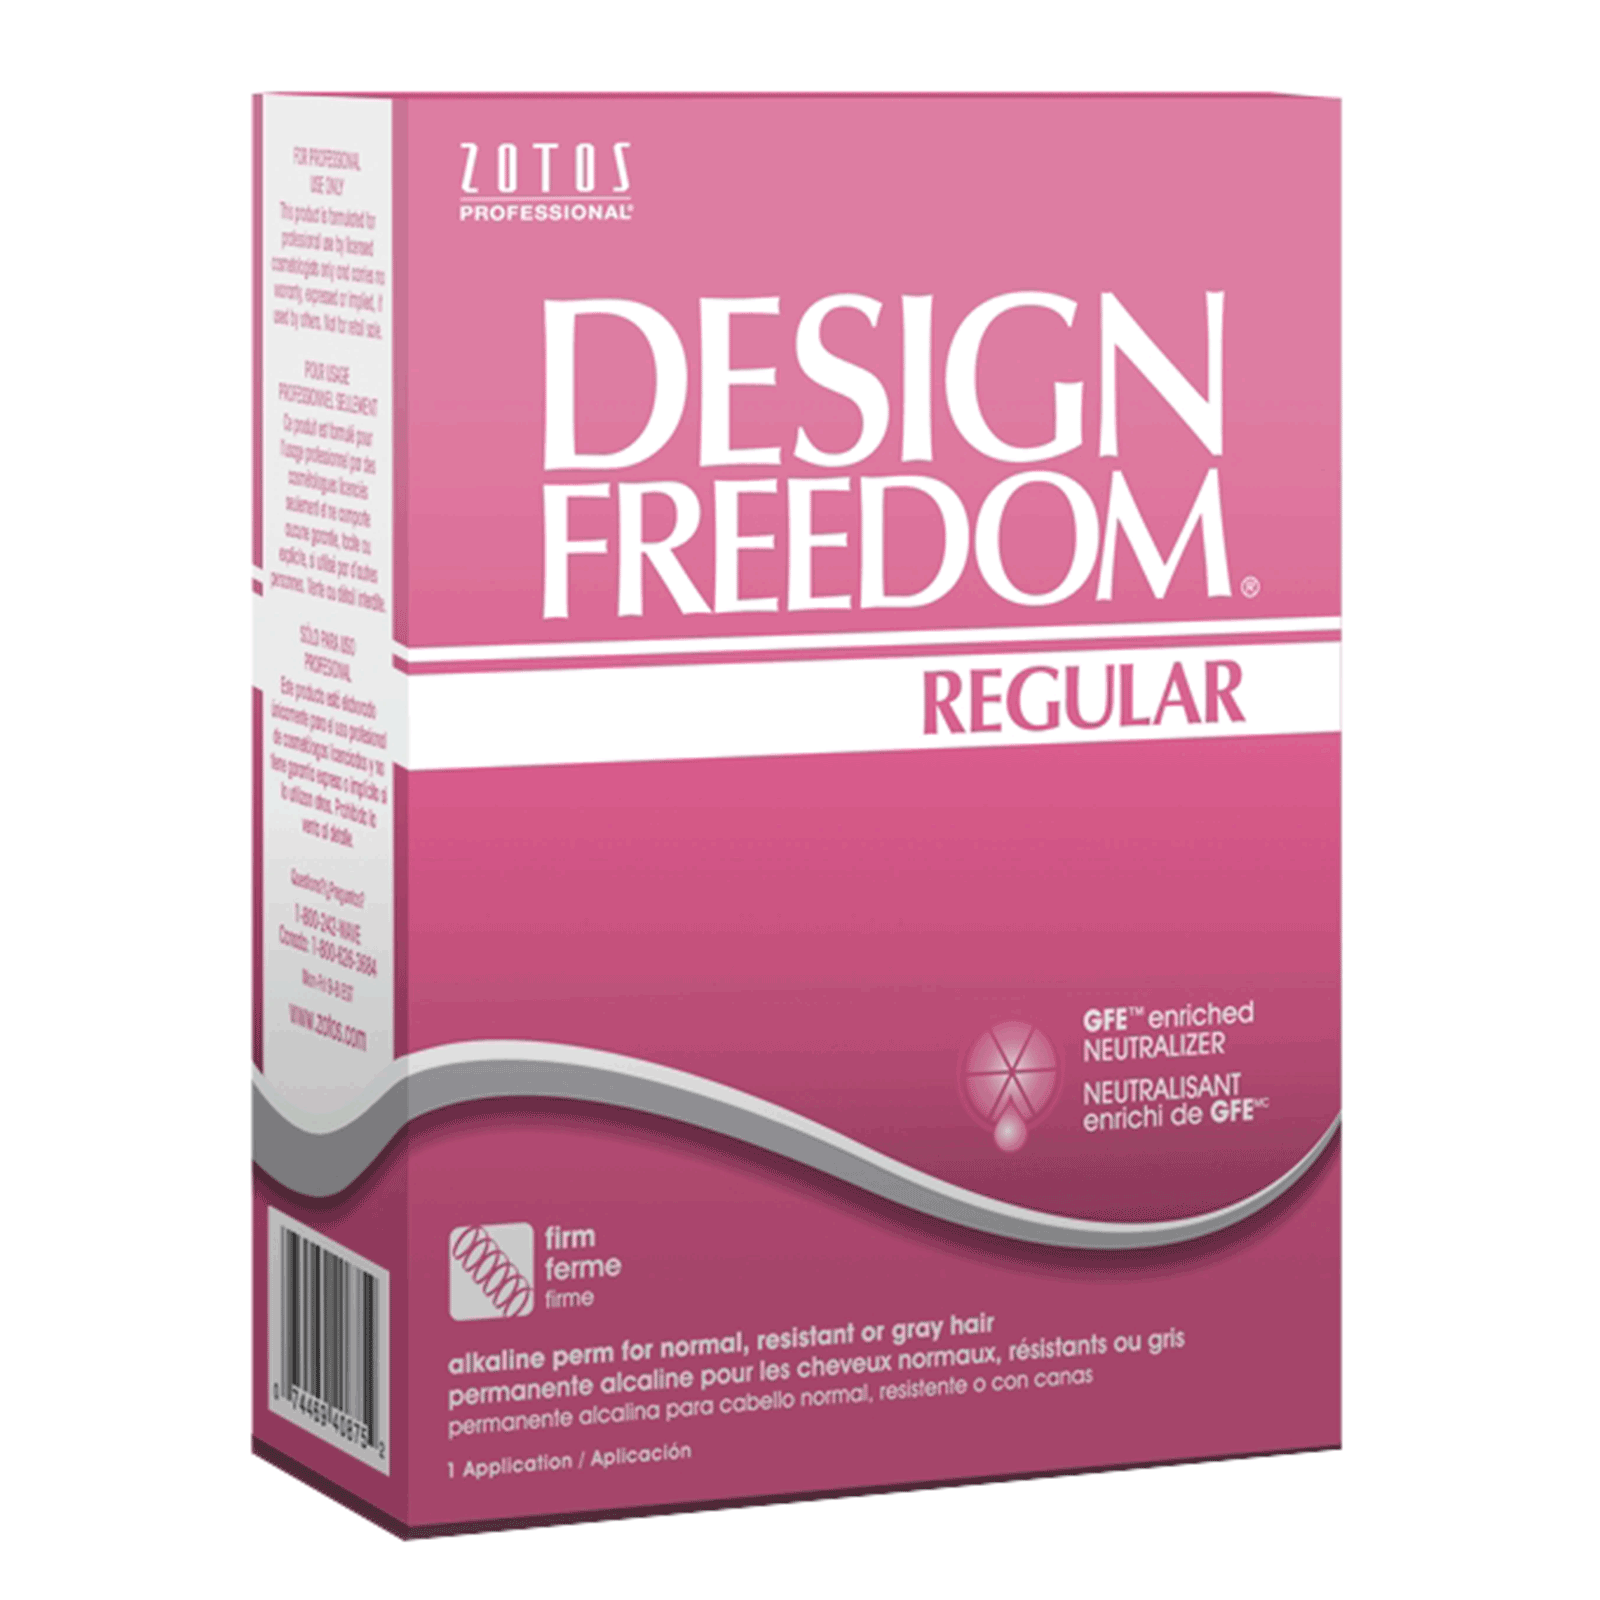 Design Freedom Conditioning Perm for Normal Hair